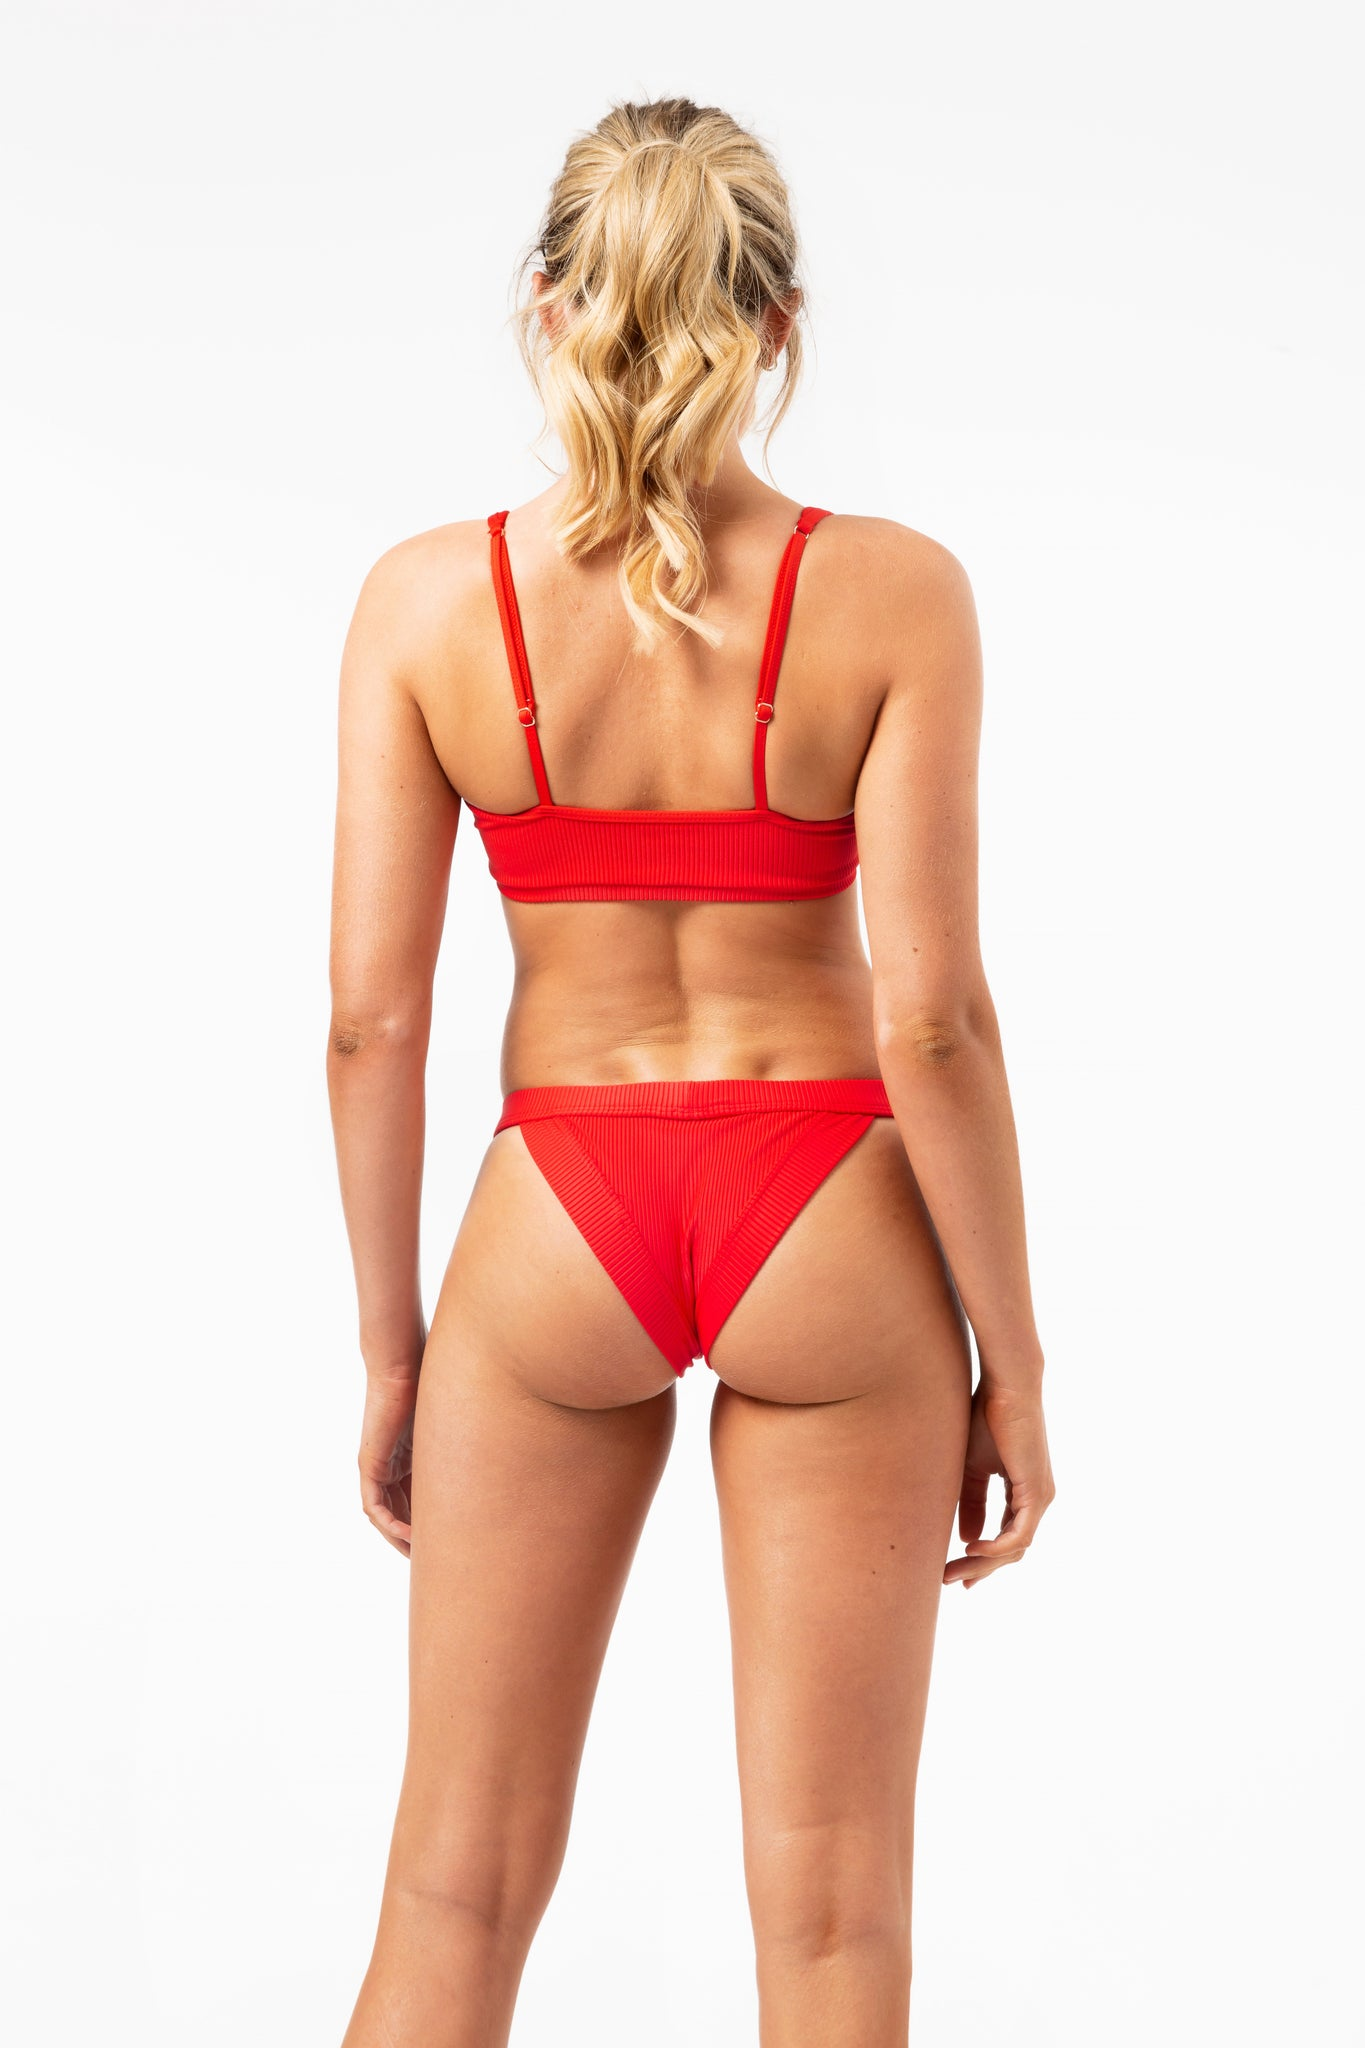 ALL THE FEELS: Cole Bottoms in Red - FRANKIES BIKINIS